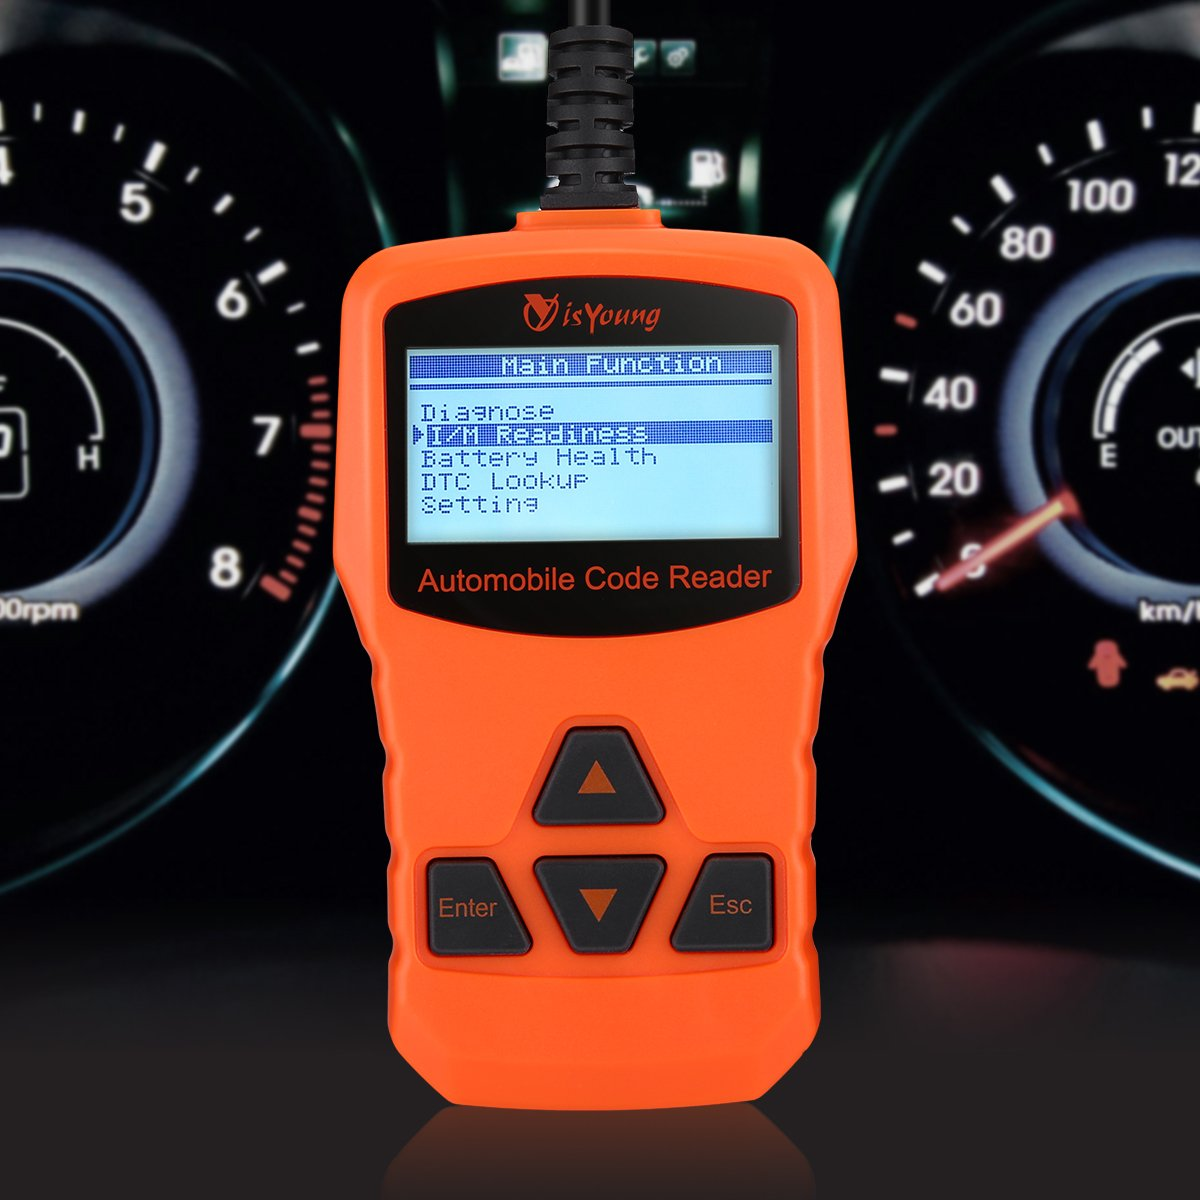 isYoung Vehicle Scan Tool OBD/EOBD CAN Diagnostic Tool 10 Modes OBDII Test + Quick Battery Health Check Engine Scanner for AUDI/VW/SKODA/BENZ/BMW/PORSCHE/GM & Other Car/SUV/Light Duty Vehicle(Orange)